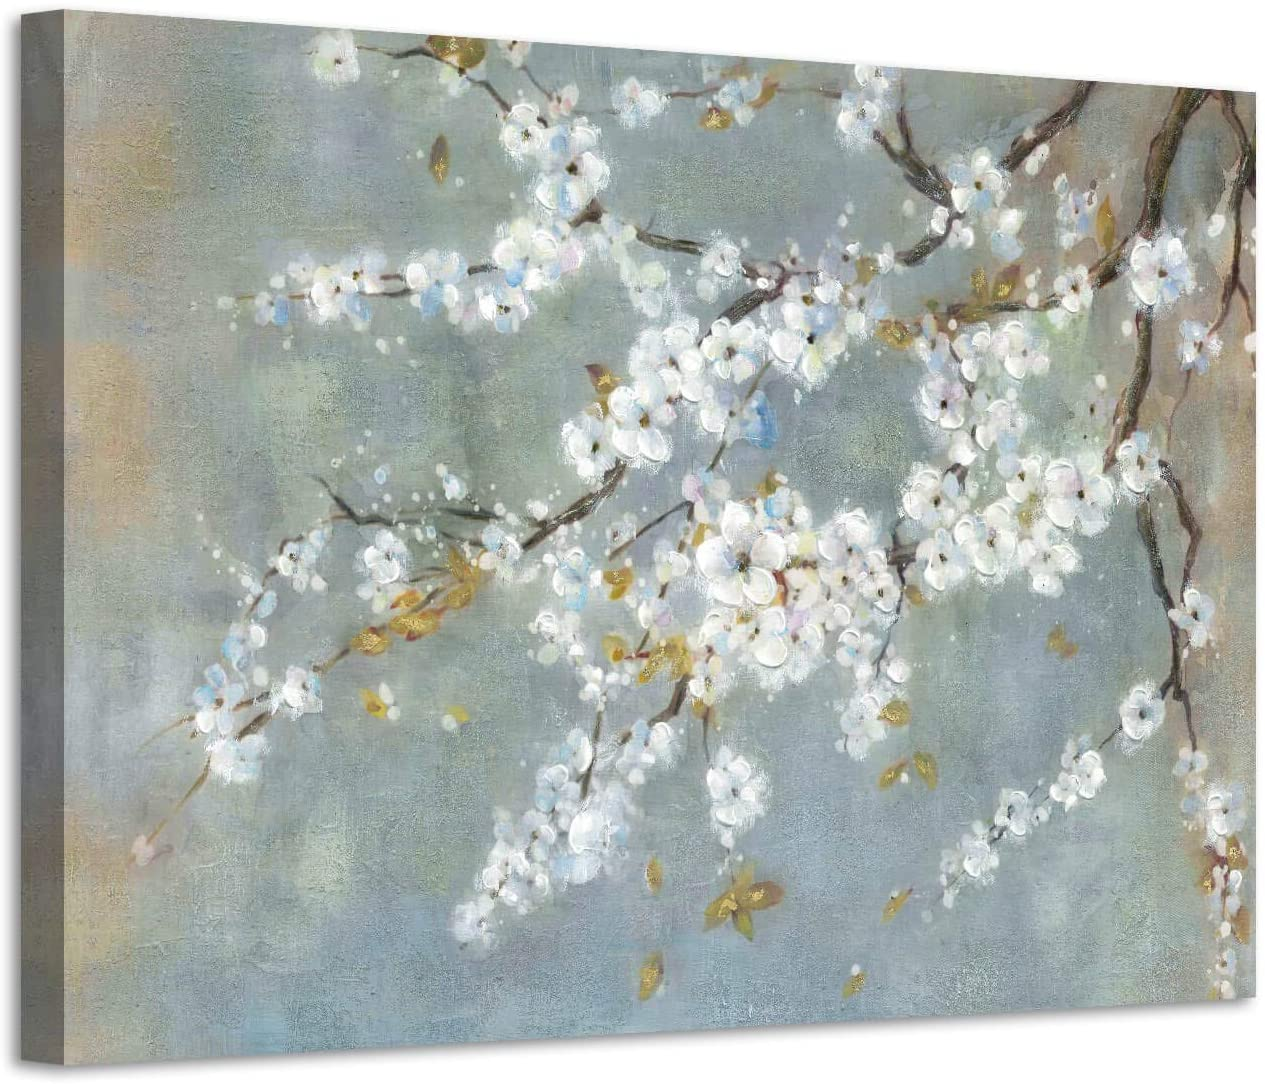 Vintage Floral Canvas Wall Art: White Plum Blossom Flowers Painting Print with Gold Foil on Canvas for Living Room (36'' x 24'' x 1 Panel)